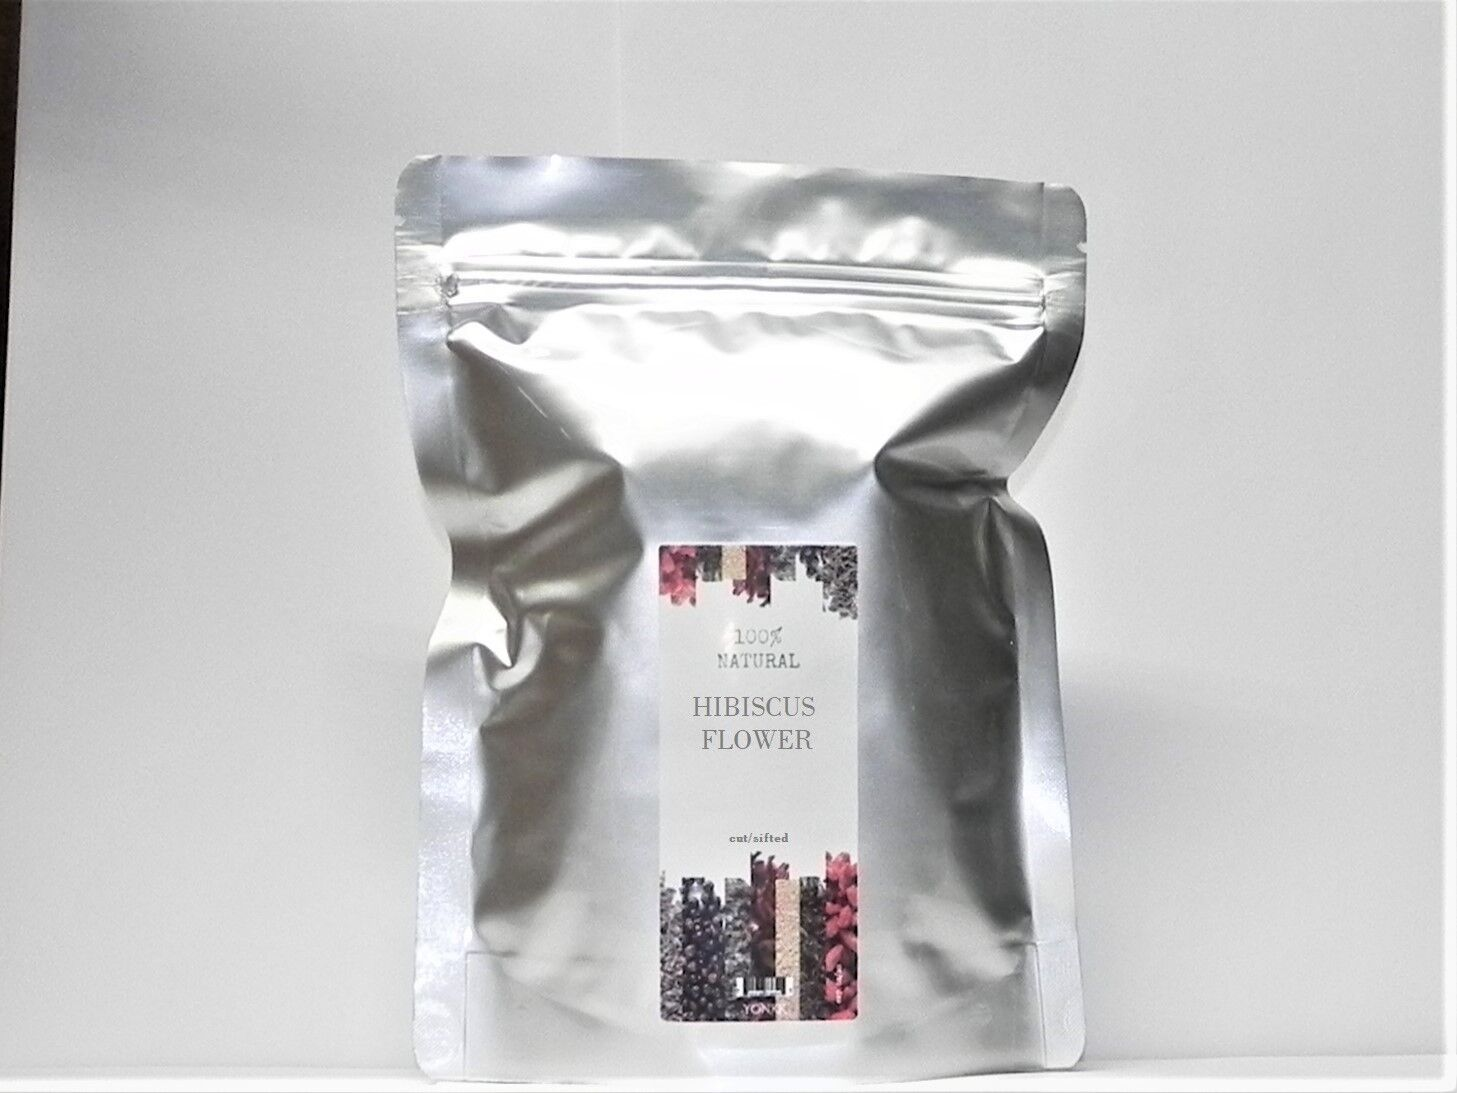 Hibiscus Tea Flower Cut Sifted - 1 2 4 5 6 8 10 14 16 oz lb